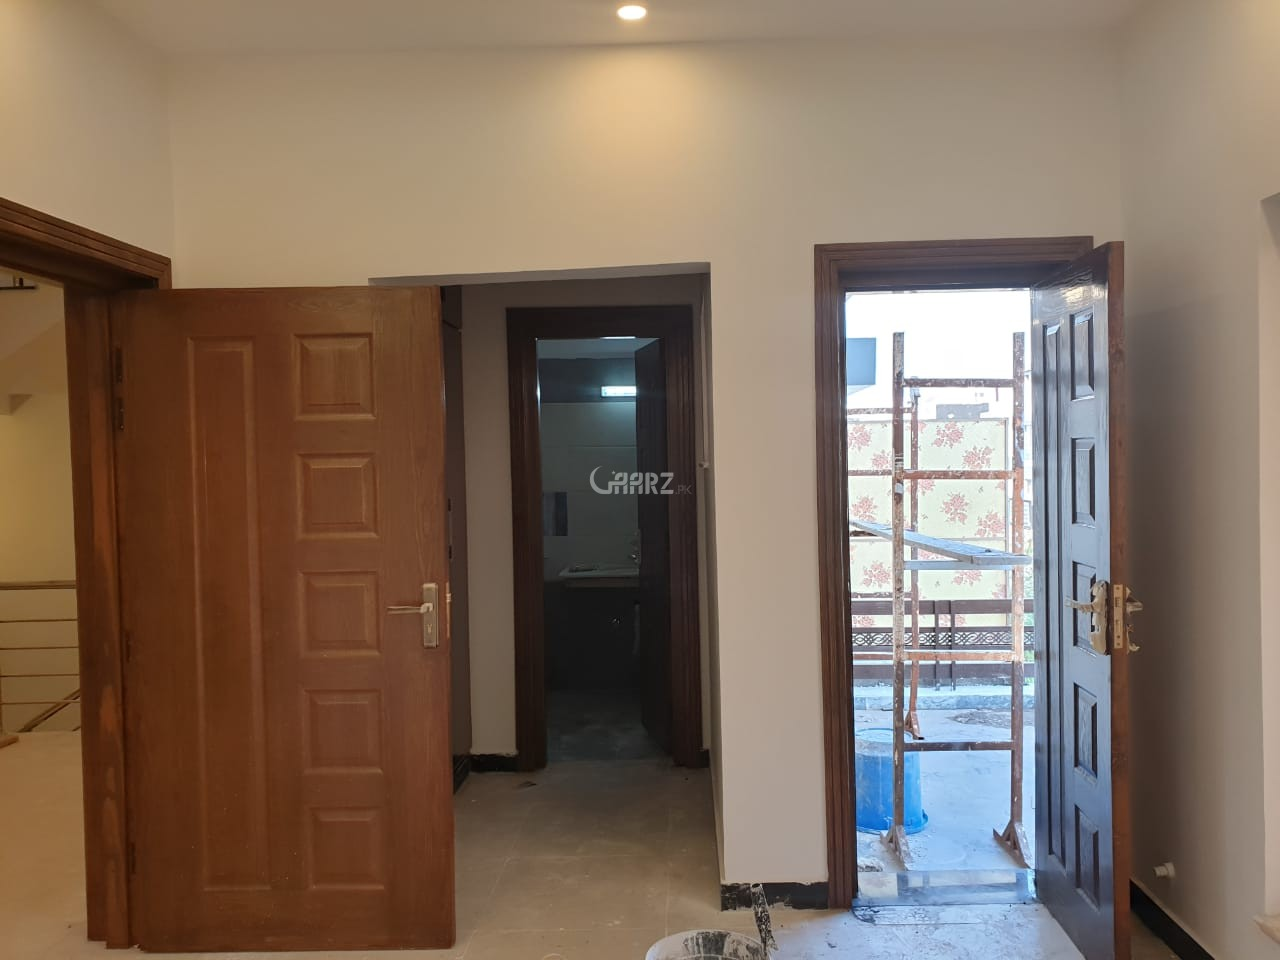 5 Marla House for Sale in Islamabad Rightway Homes For Sale On Installments In Bahria Enclave Islamabad